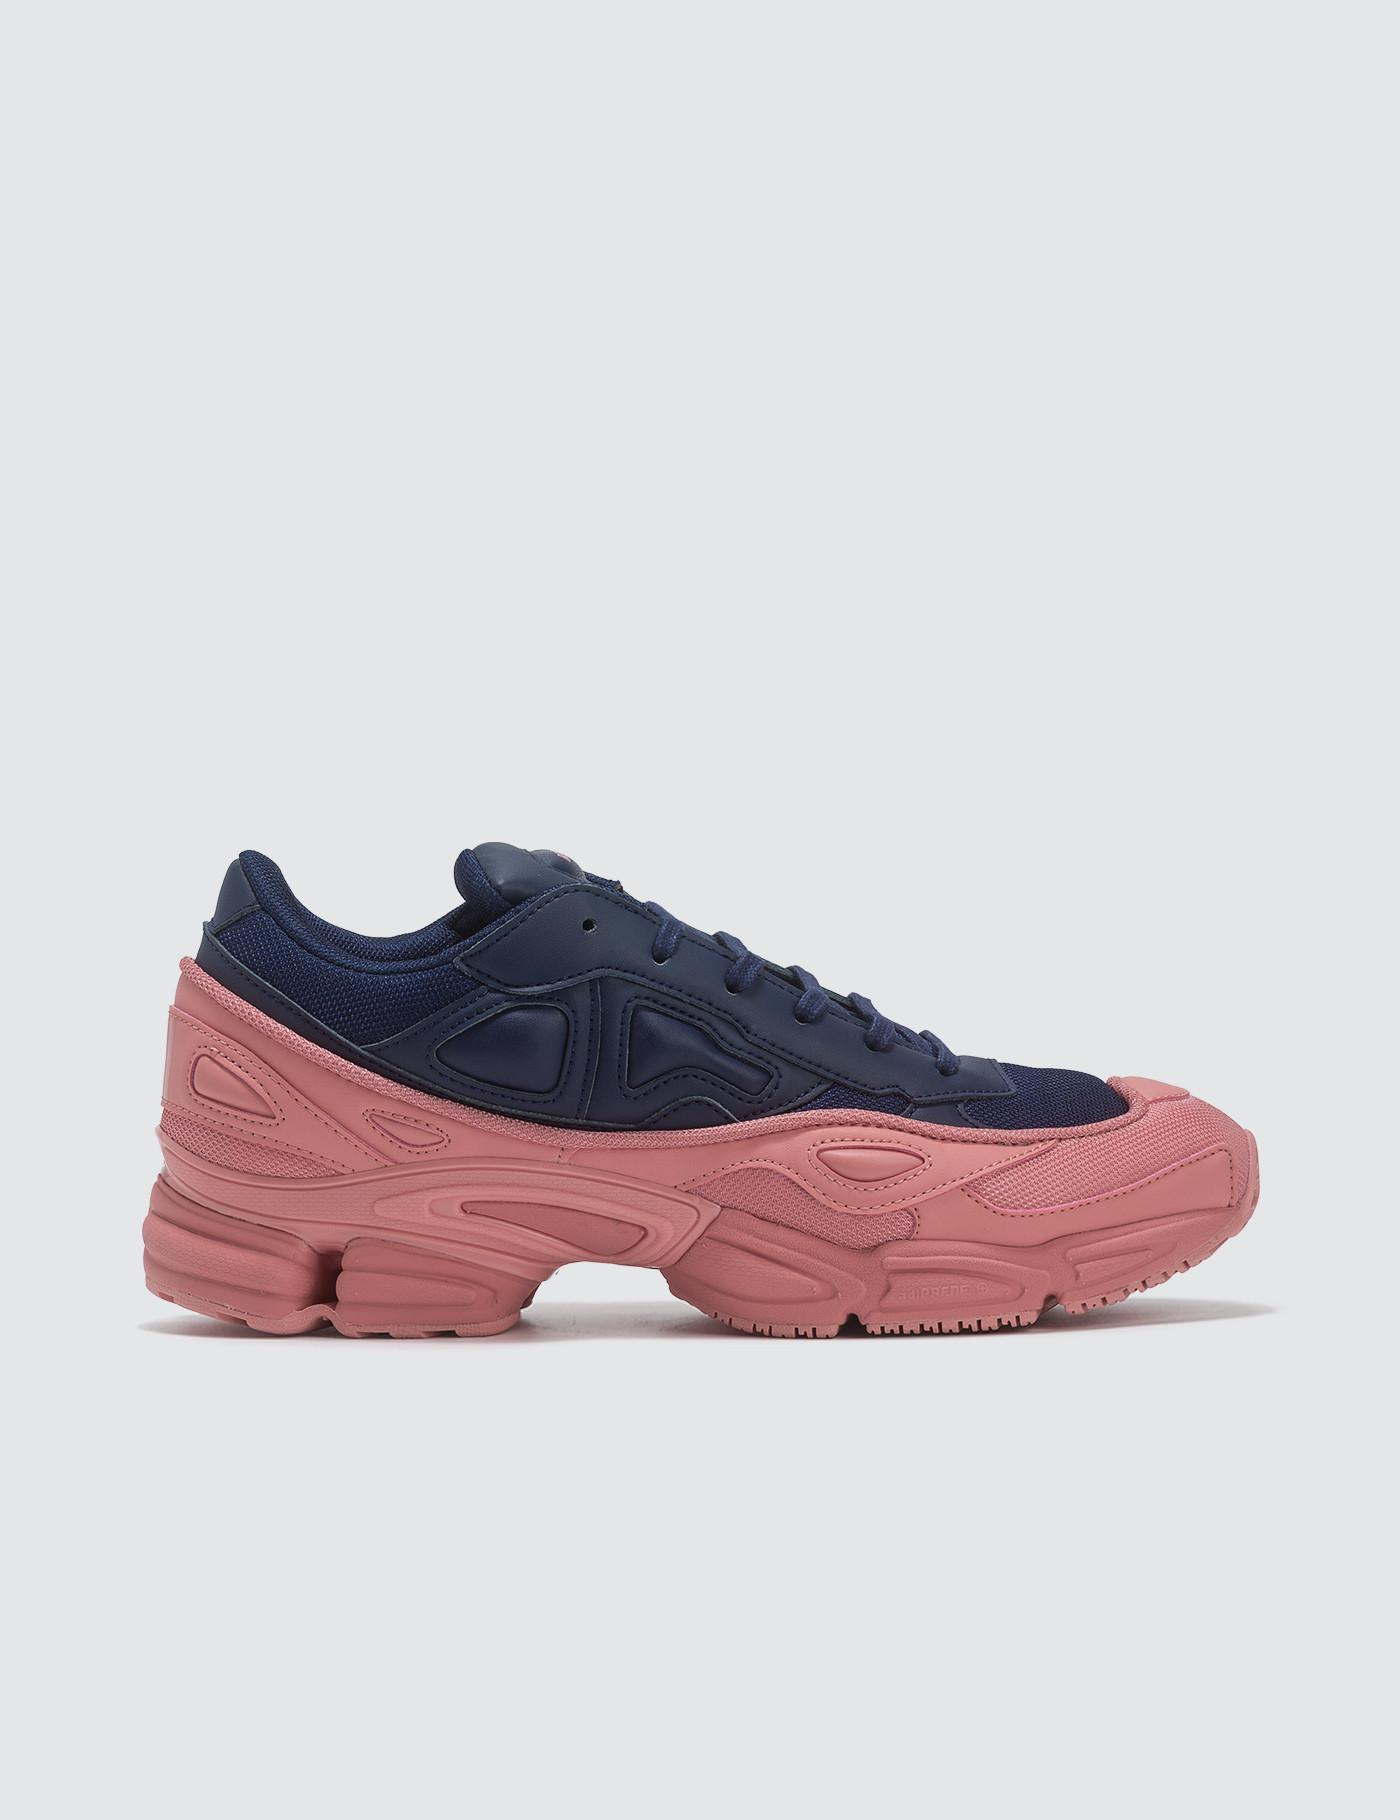 reputable site 9f508 2c345 View fullscreen  save off a25f8 3fd57 Raf Simons - Blue Adidas By Ozweego  for Men - Lyst.